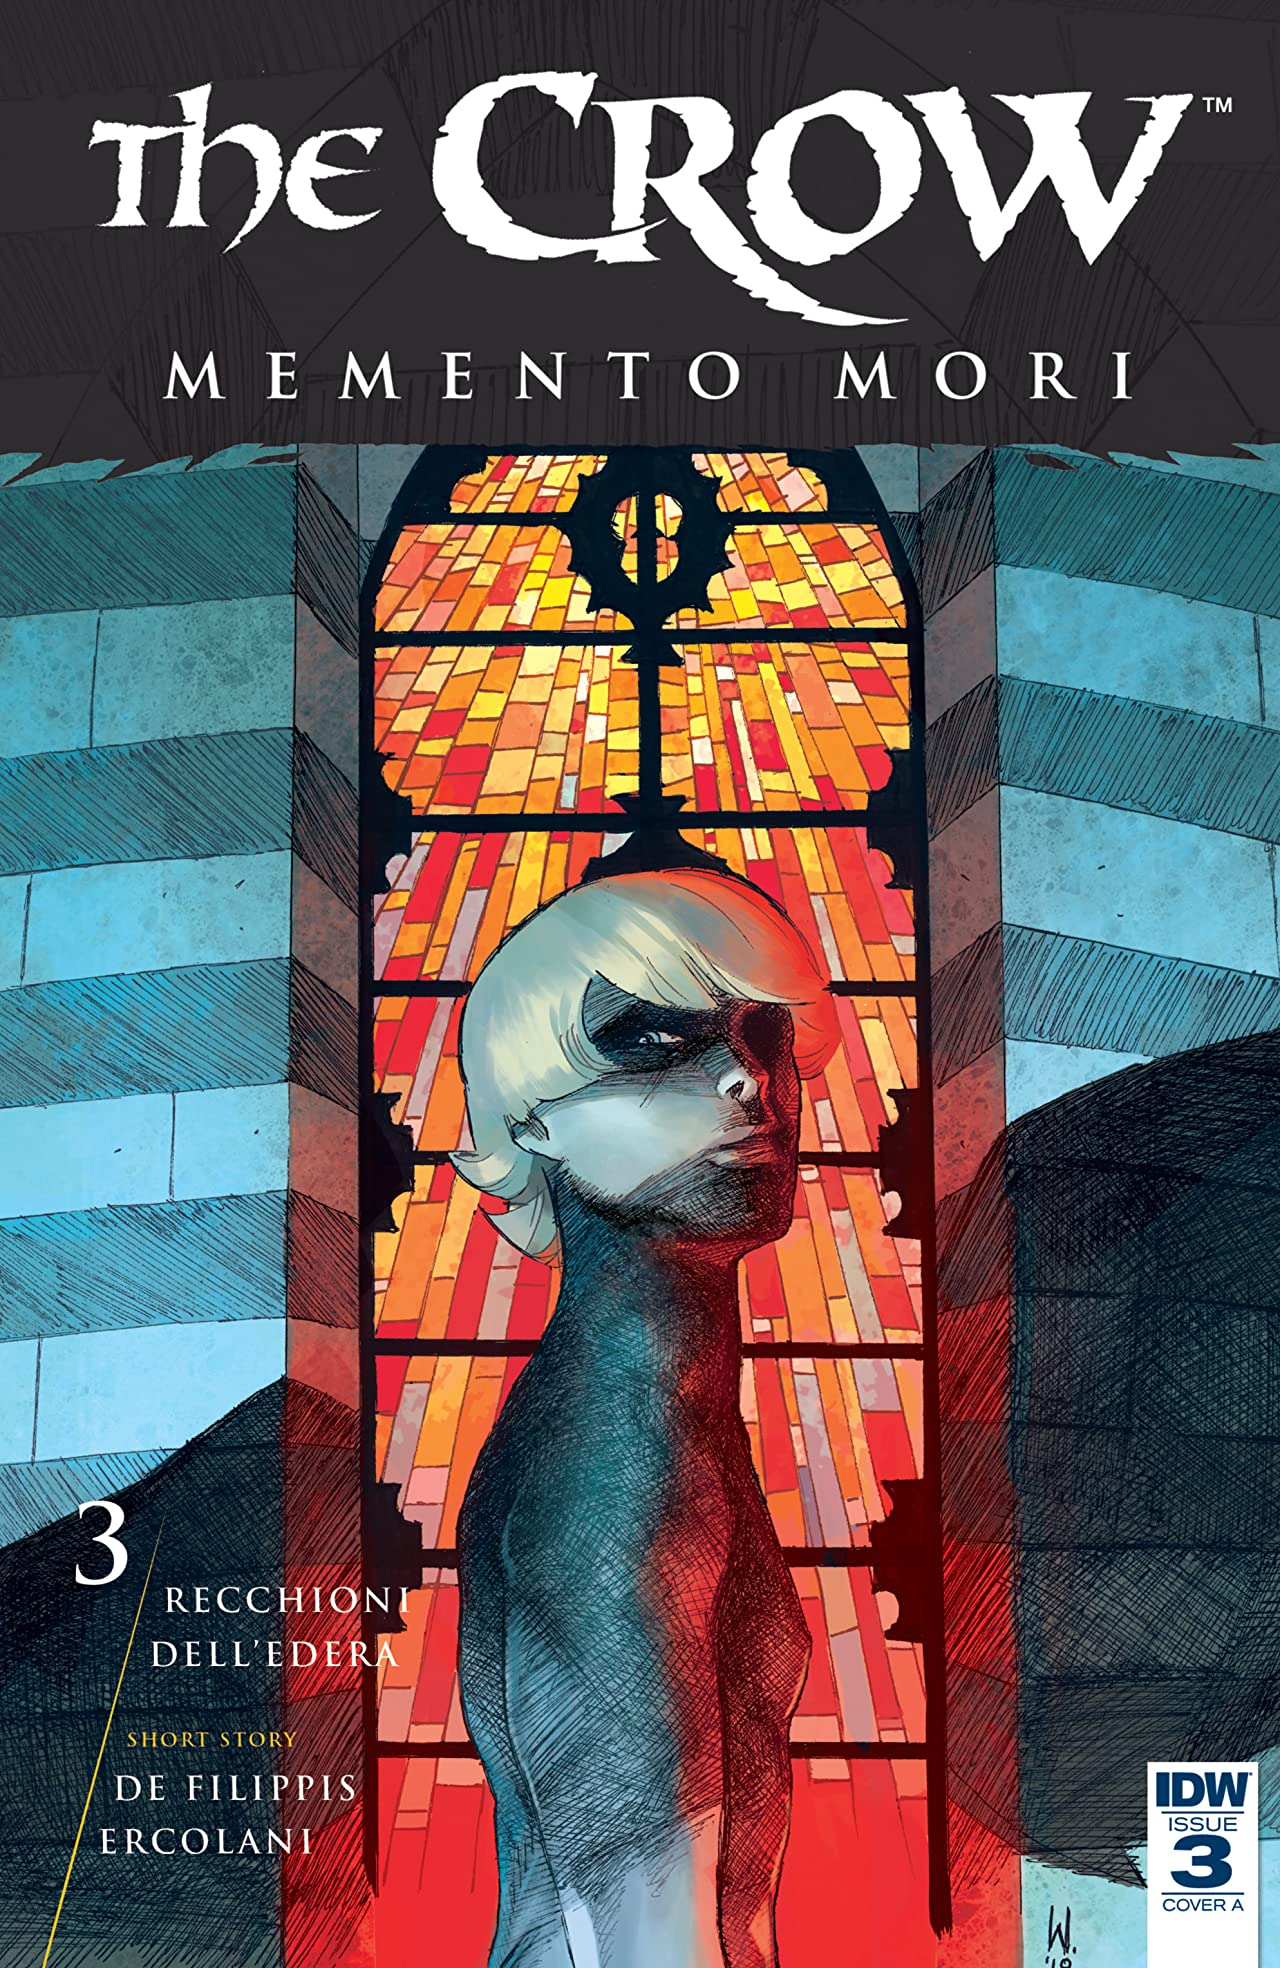 The Crow: Memento Mori No.3